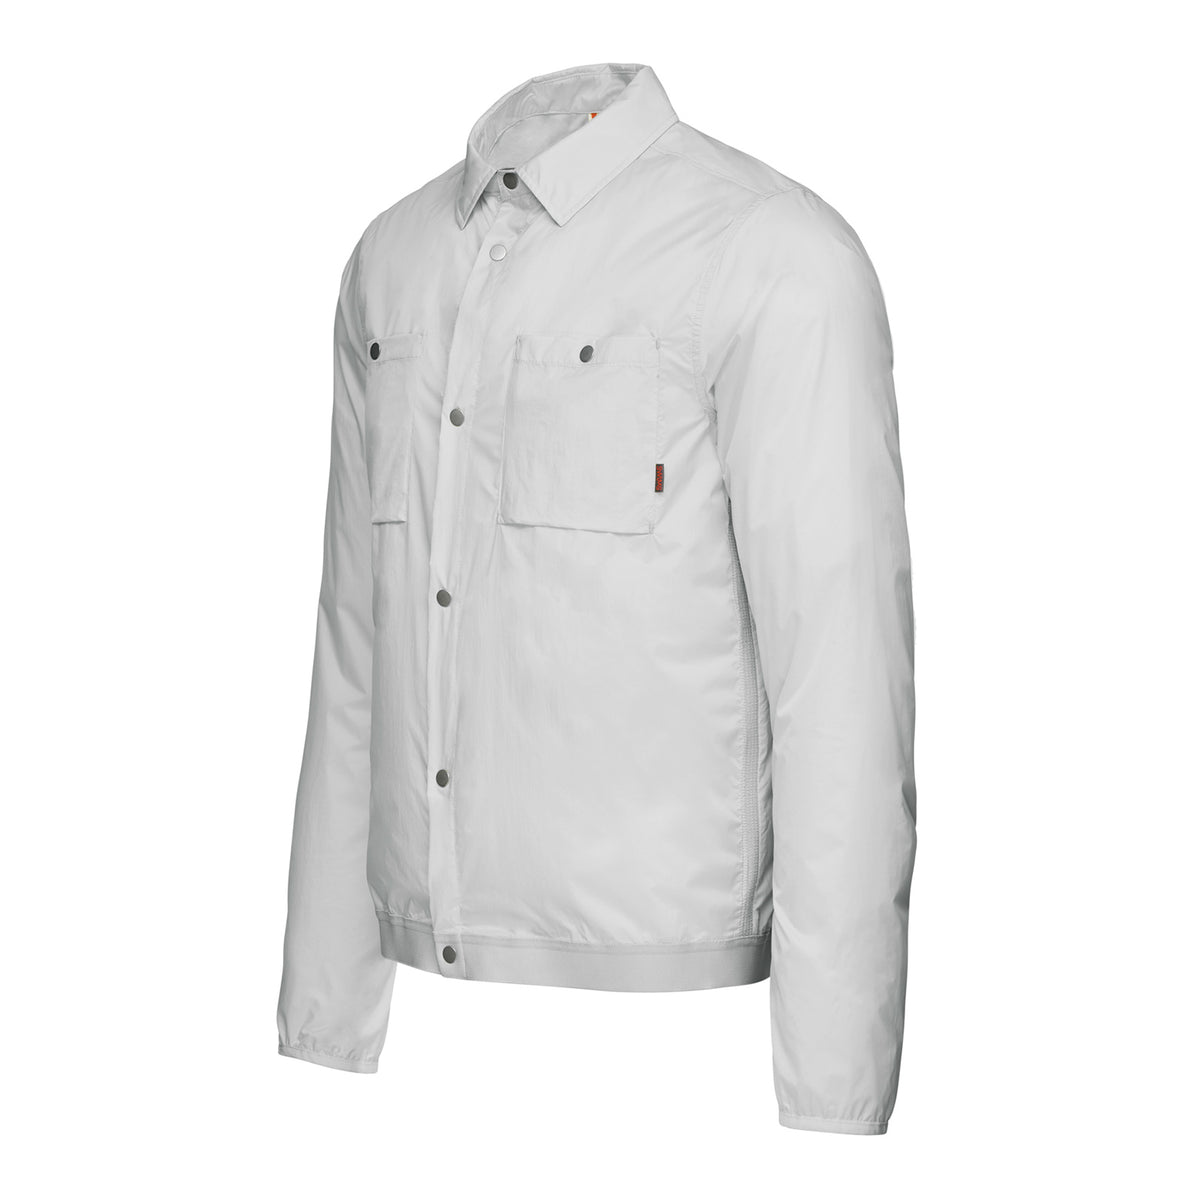 Breeze Shirt Jacket - background::white,variant::Alloy